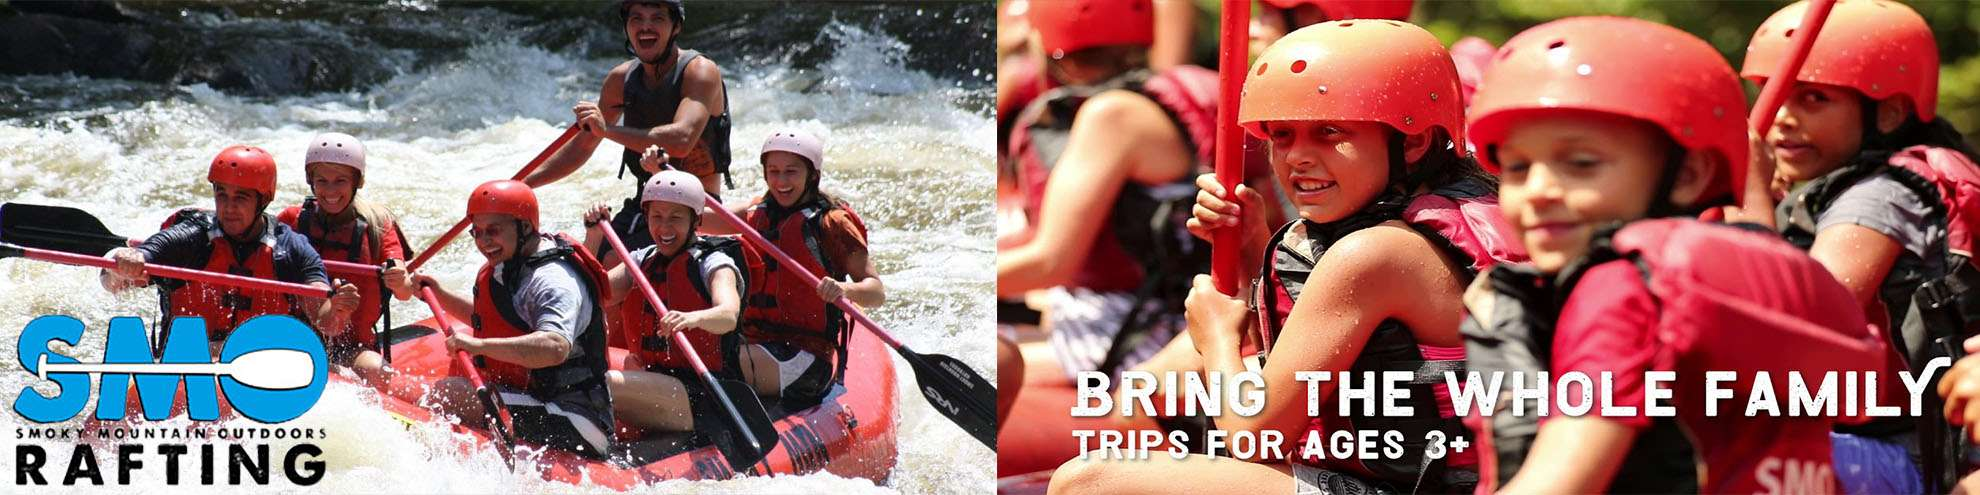 Smoky Mountain Outdoor Rafting Discounted Tickets